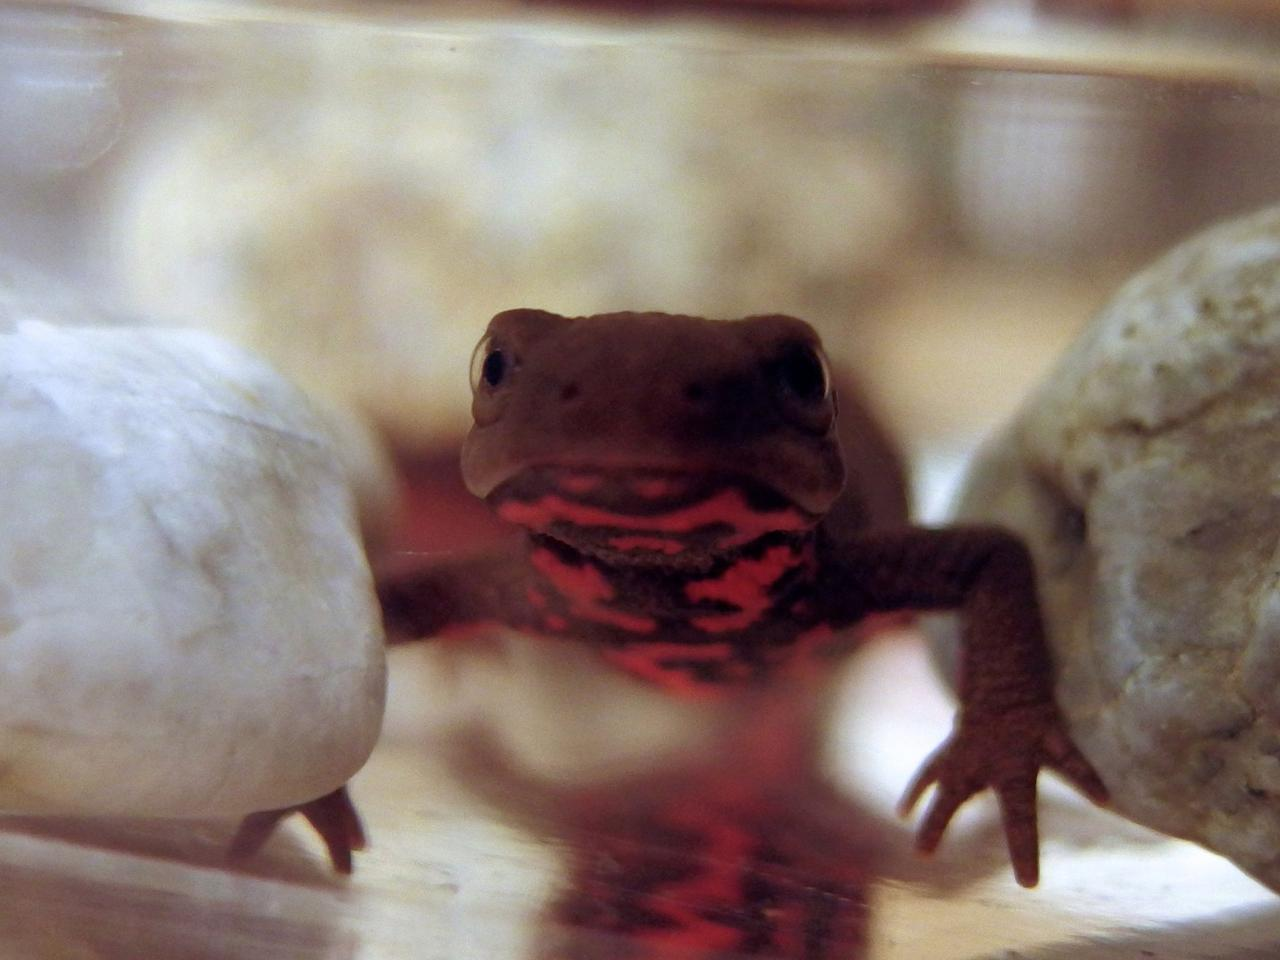 New insights into how Japanese fire bellied newts regenerate their limbs could further our understanding of tissue regeneration in mammals